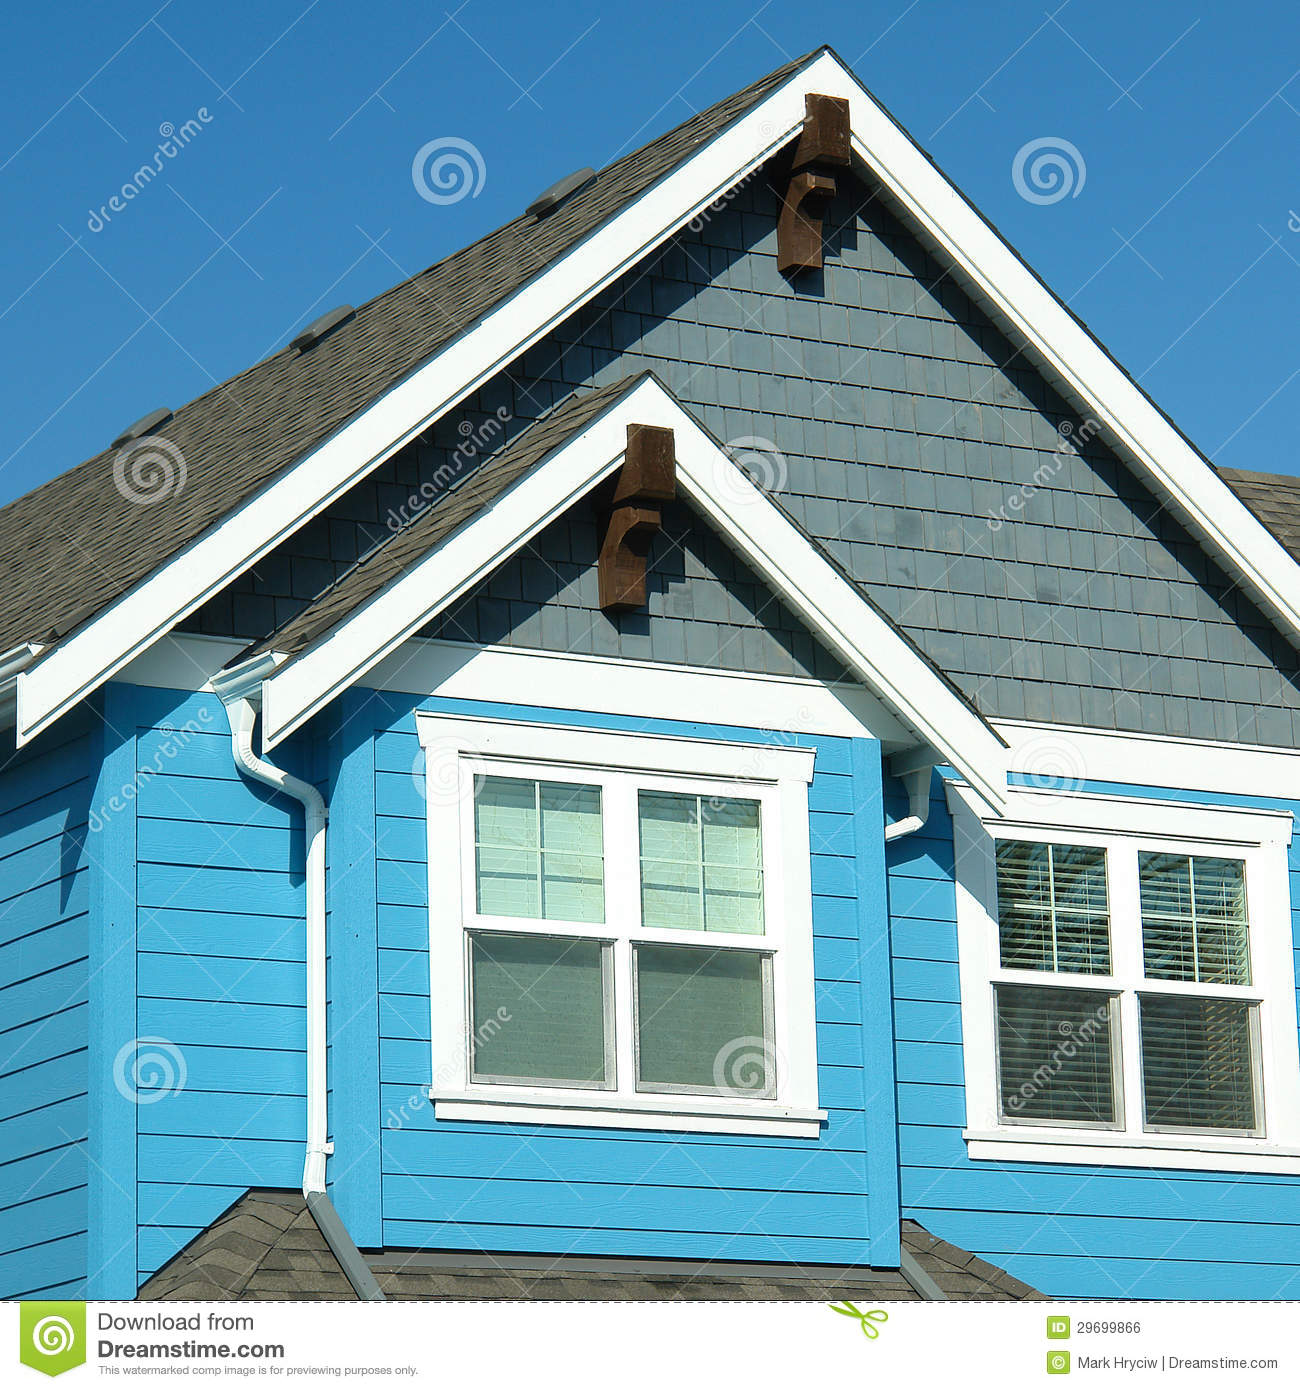 With Blue Siding Homes: Home House Blue Siding Roof Stock Photo